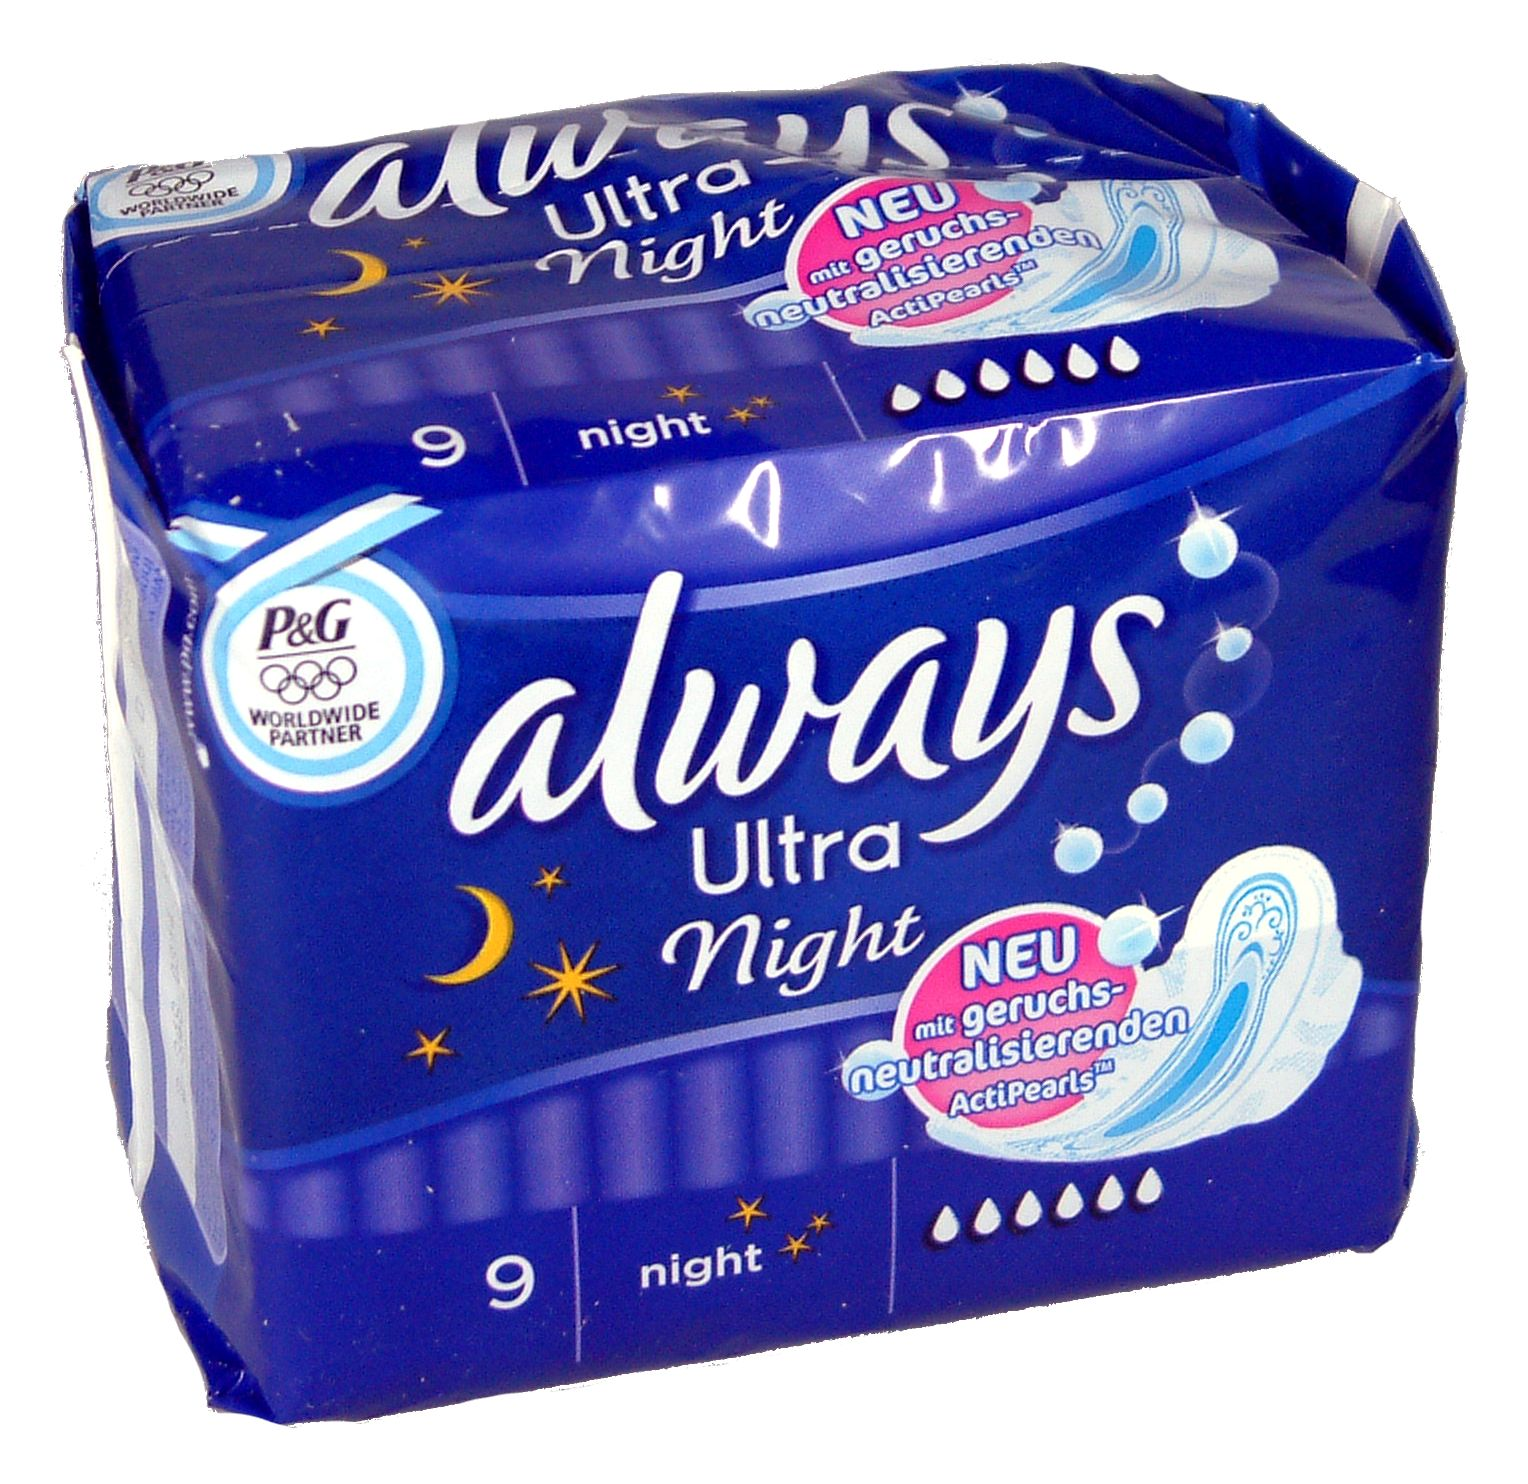 I recommend the offer: Always Ultra Night 9 sanitary pads wholesale  [288455] | Toiletries | merkandi com